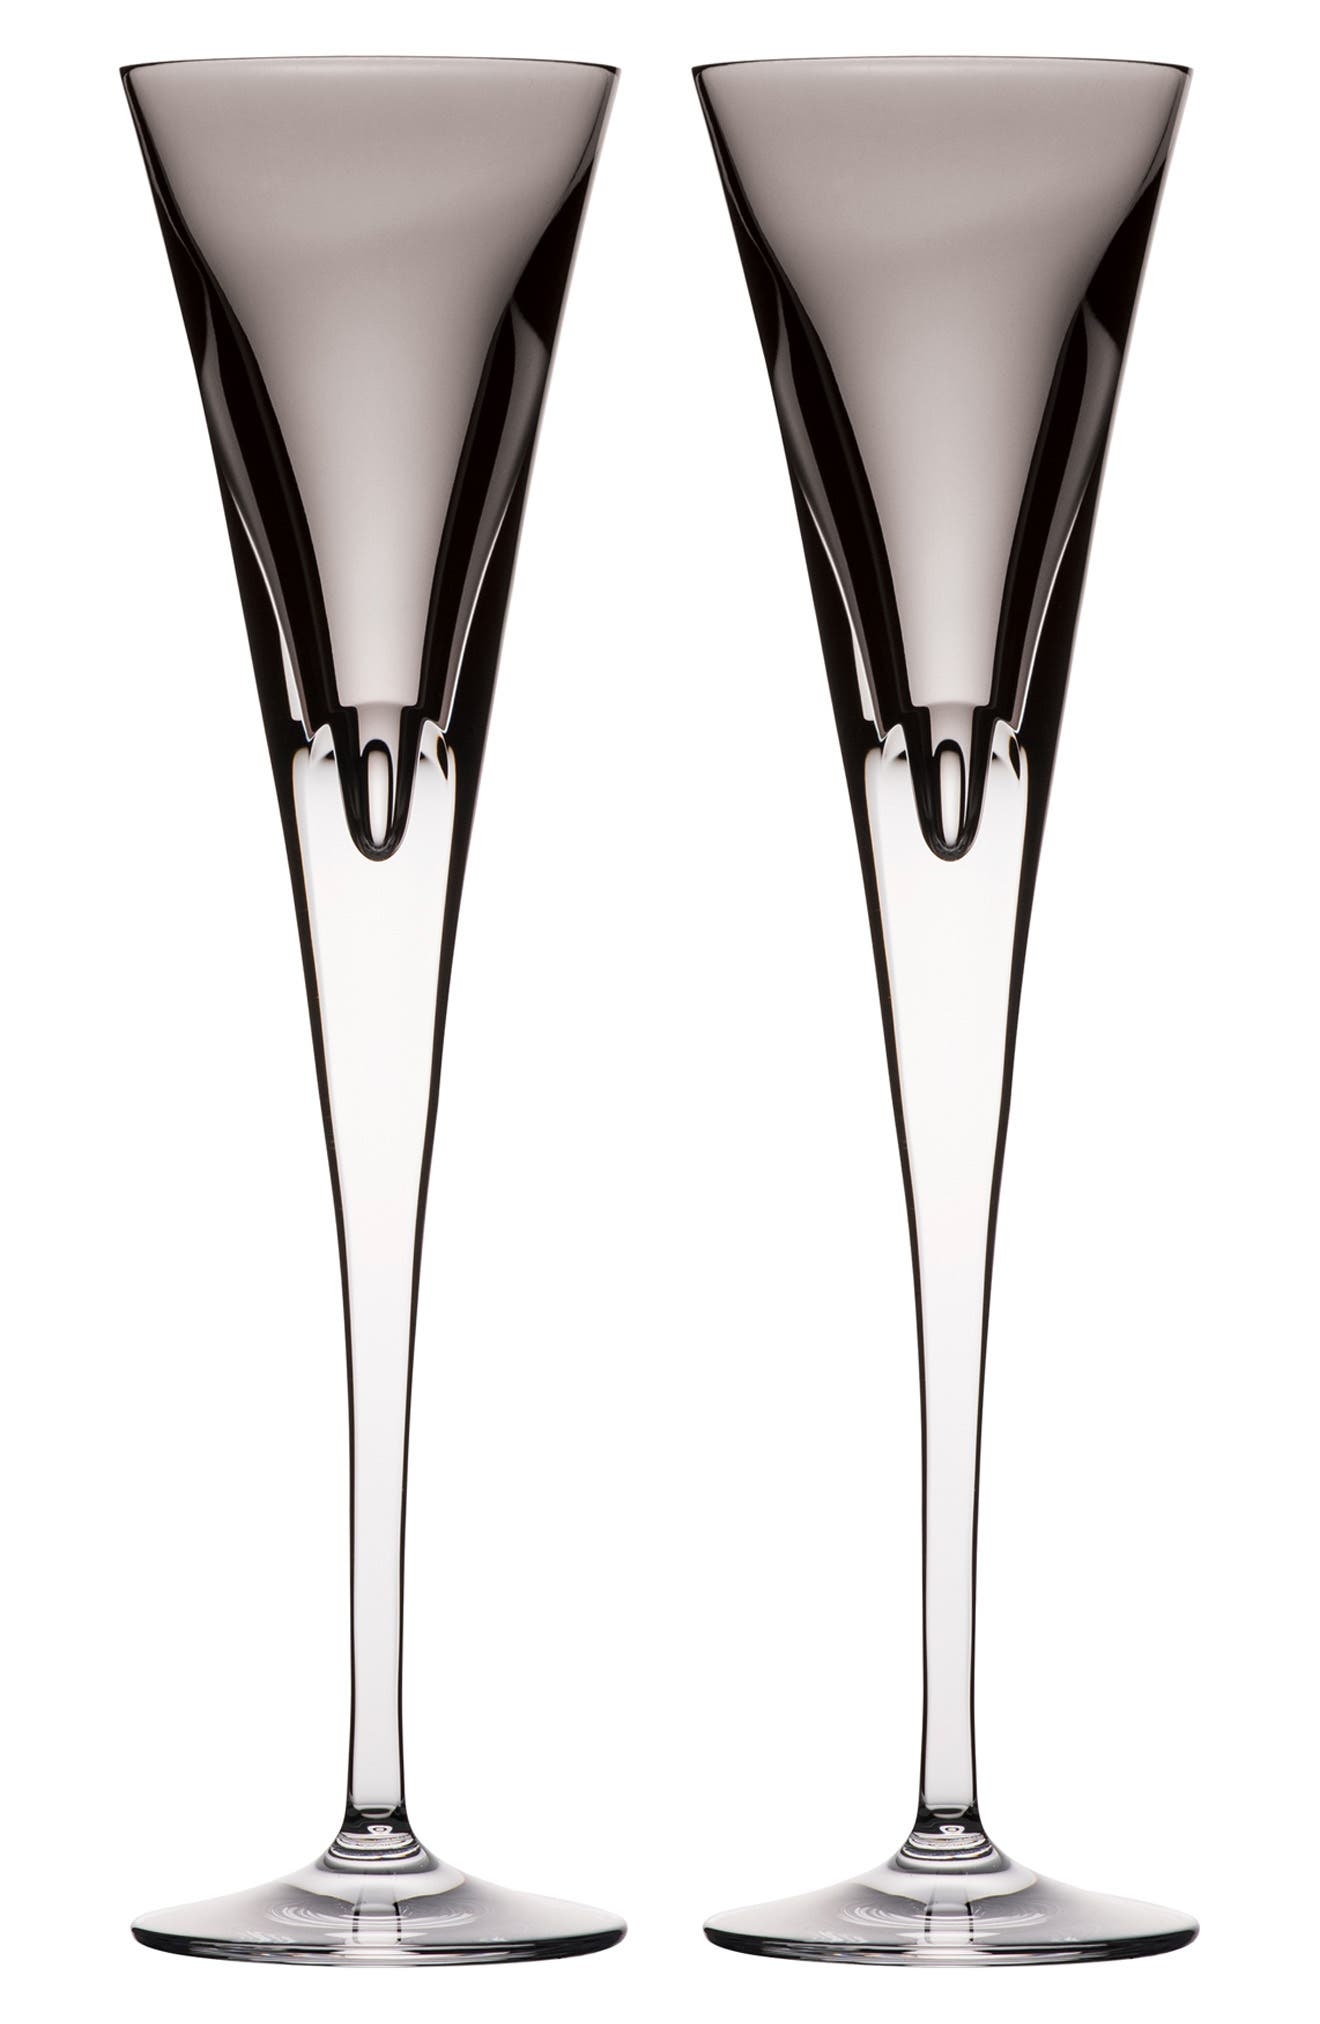 W Set of 2 Lead Crystal Champagne Flutes,                             Main thumbnail 1, color,                             SHALE